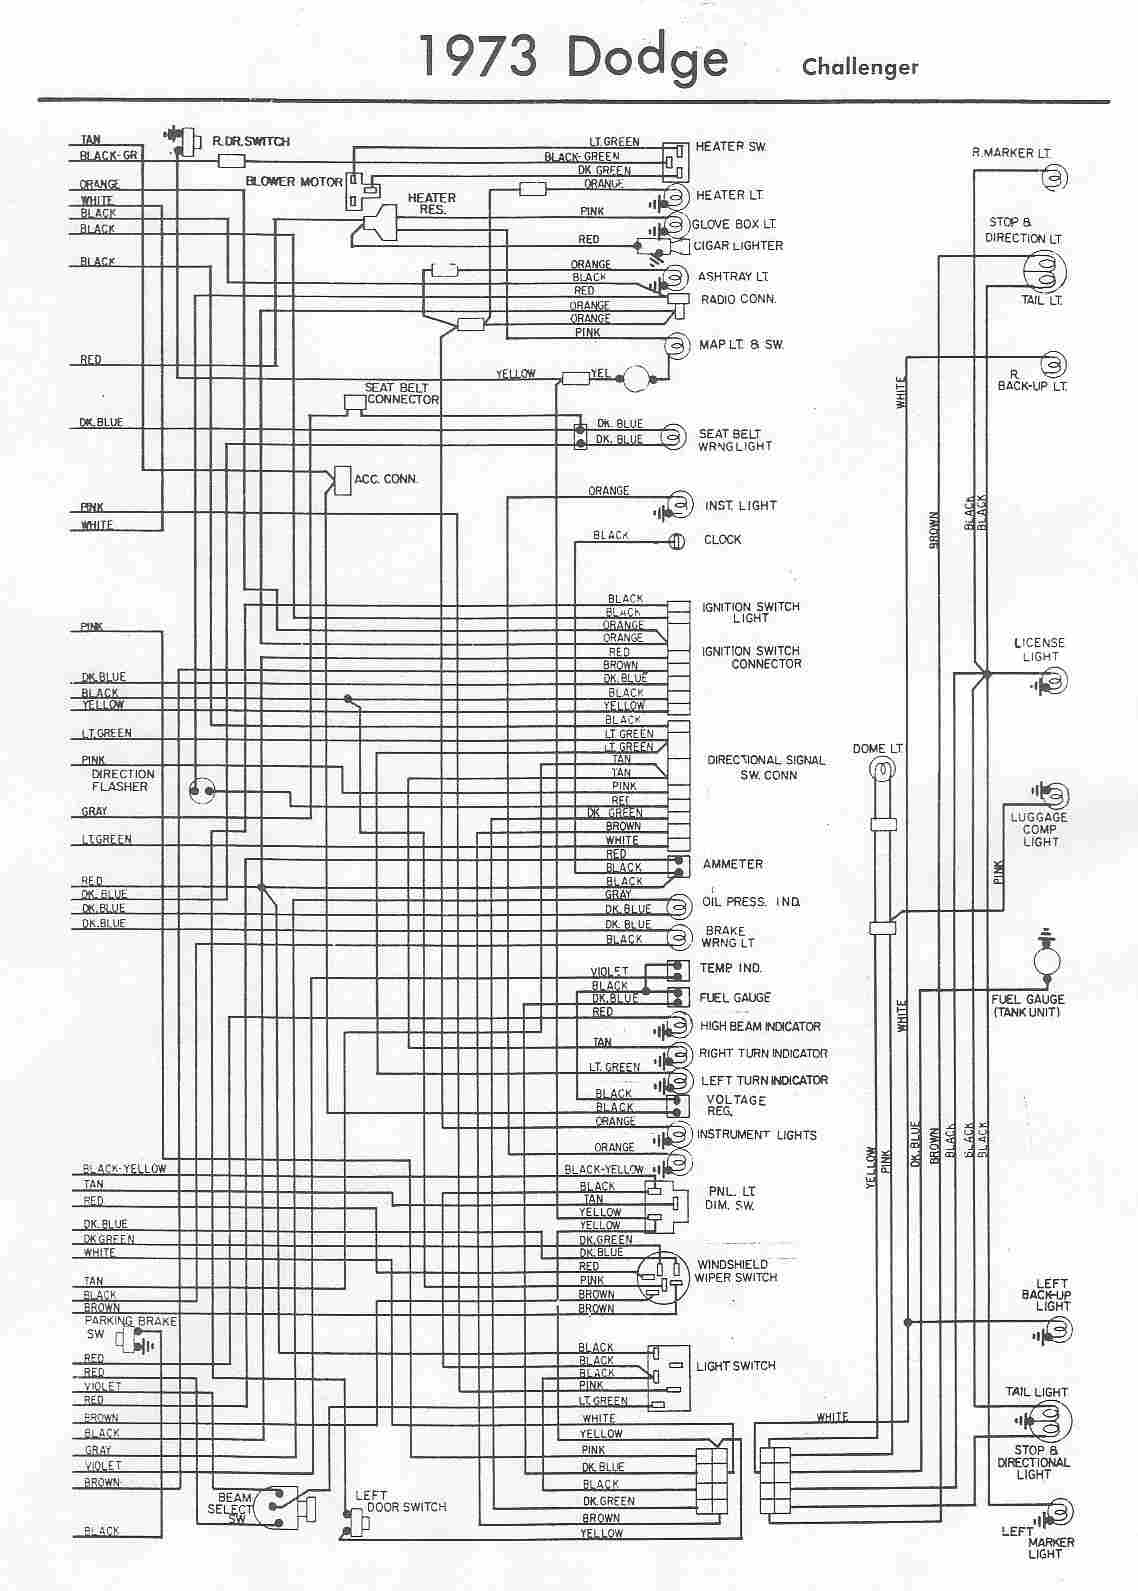 small resolution of 1973 dodge truck wiring diagram 1973 dodge truck wiring diagram data library u2022rh